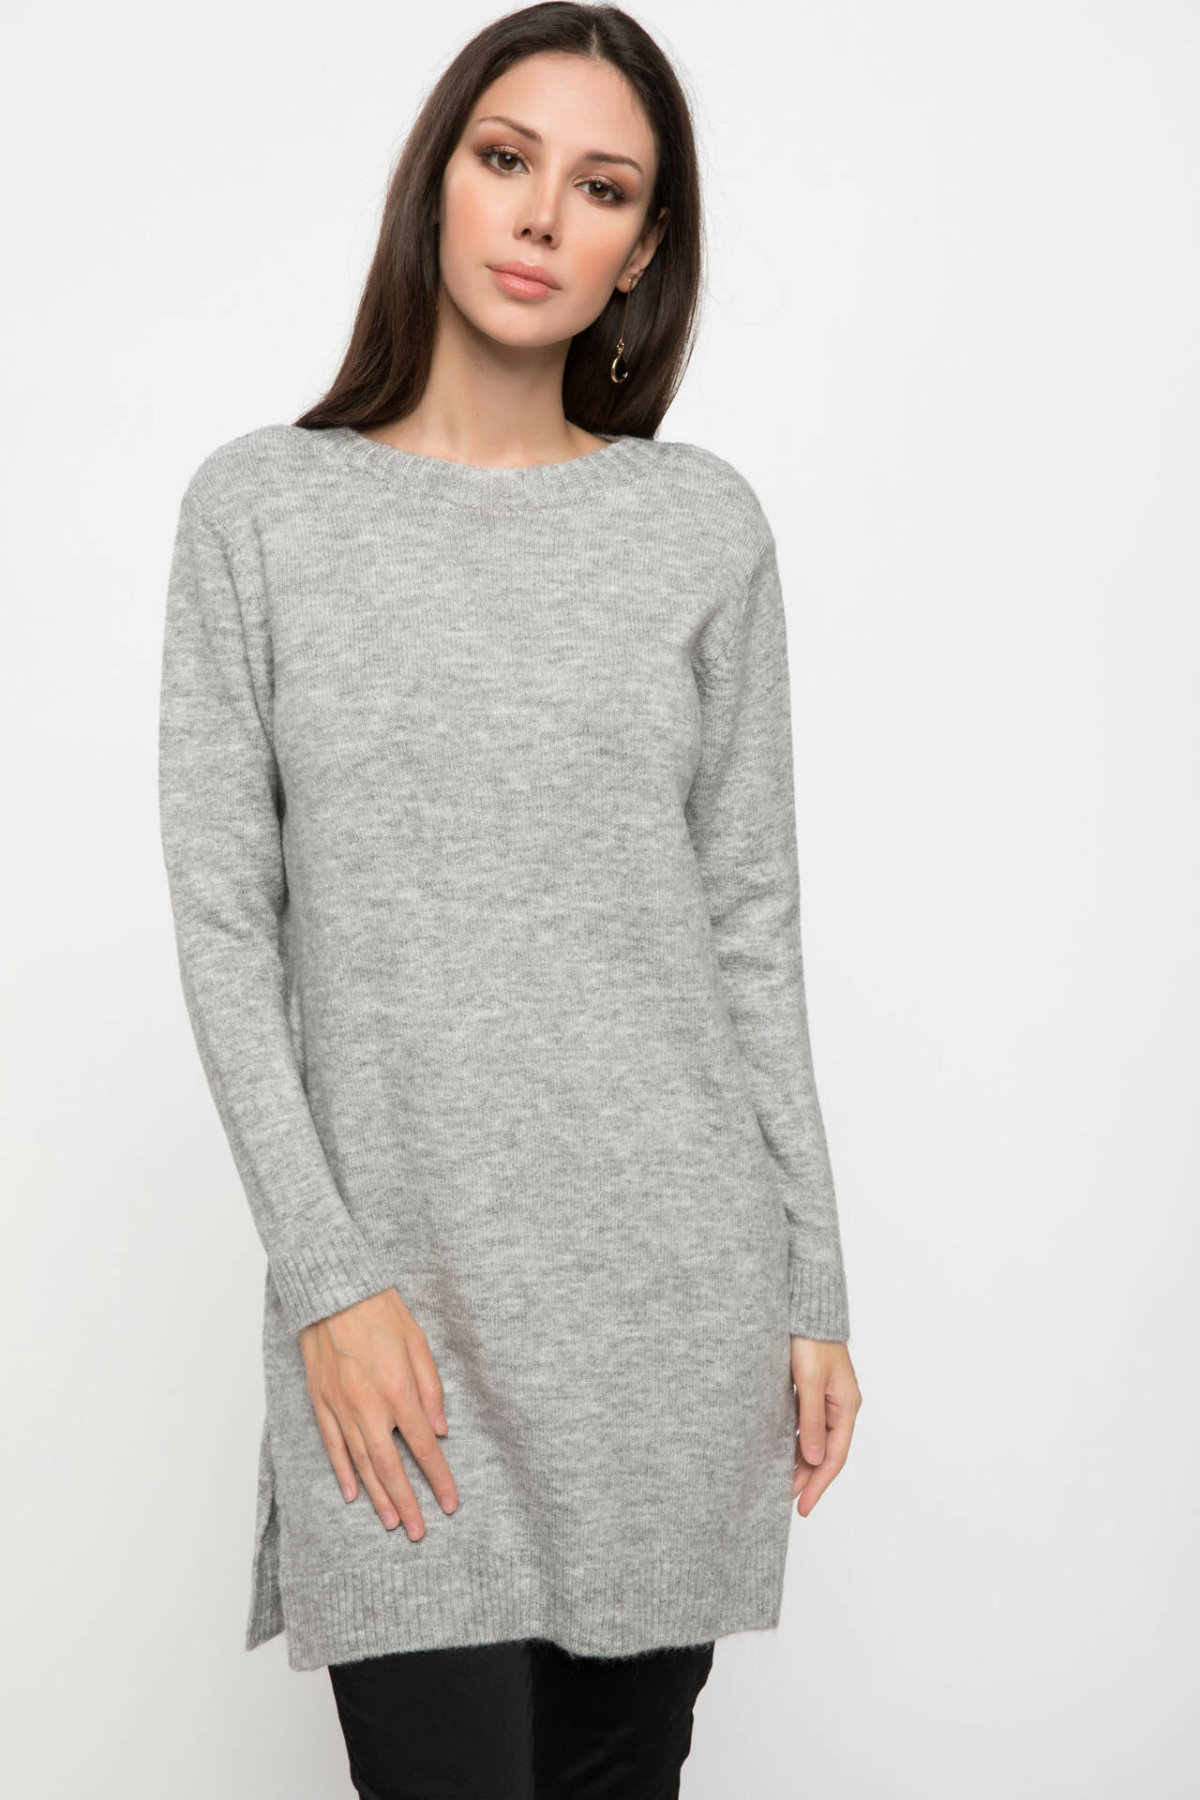 DeFacto Women Crew Solid Long Pullovers Leisure Grey Yellow Knitted Top Casual Joker Tops Women Simple Tops Cloth -J2912AZ18WN